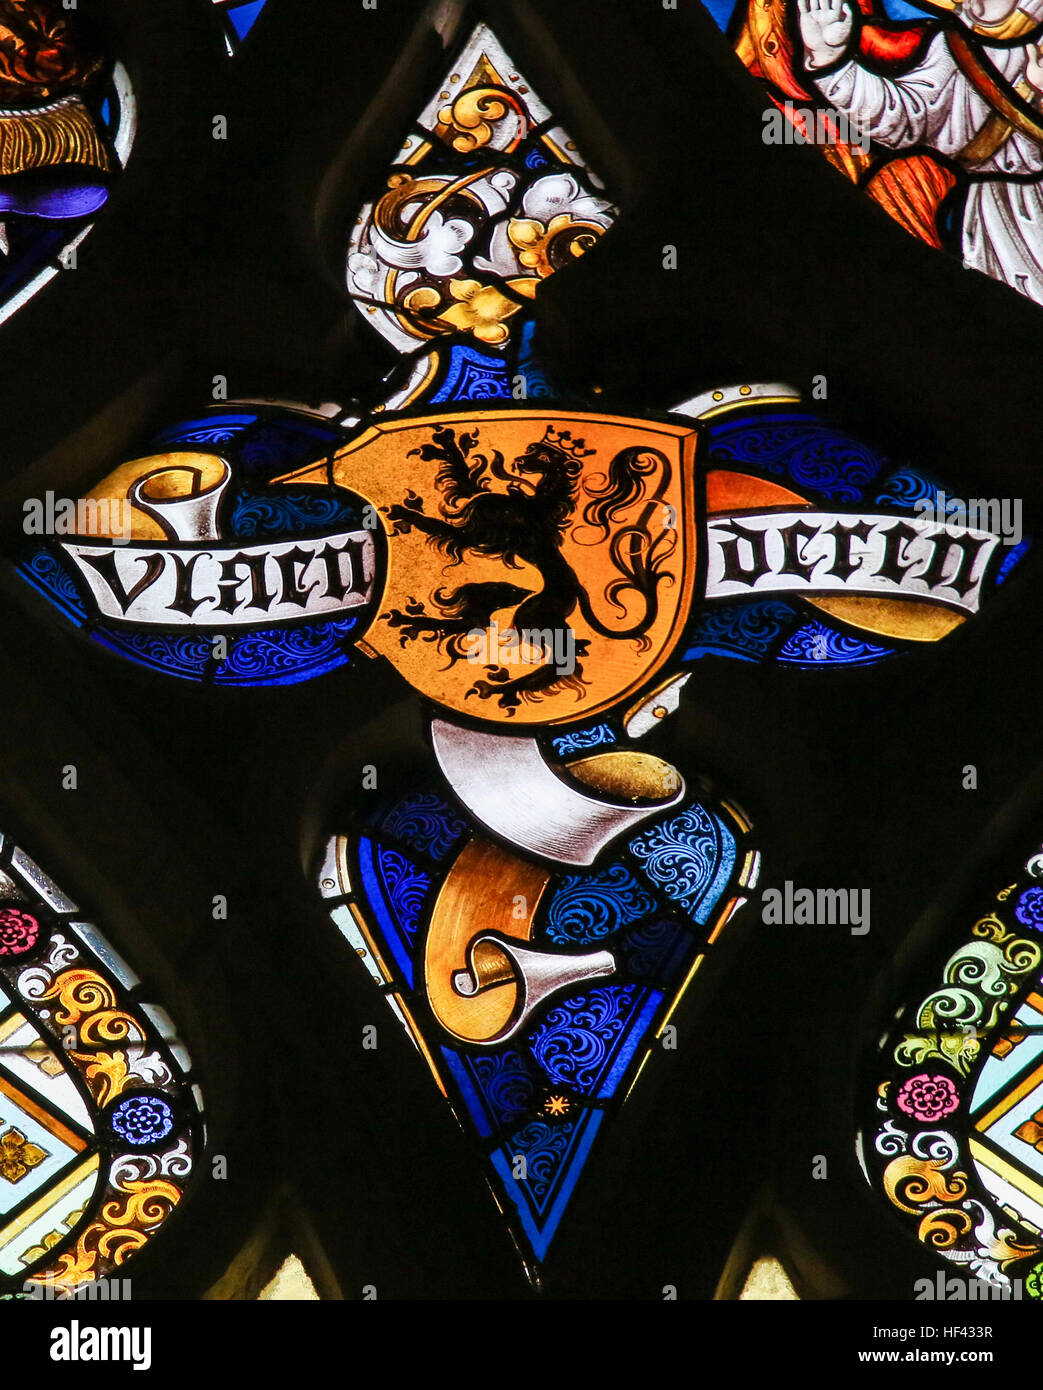 Stained Glass window depicting the Flemish Lion and the text Vlaanderen (Flanders) in the Cathedral of Saint Bavo - Stock Image